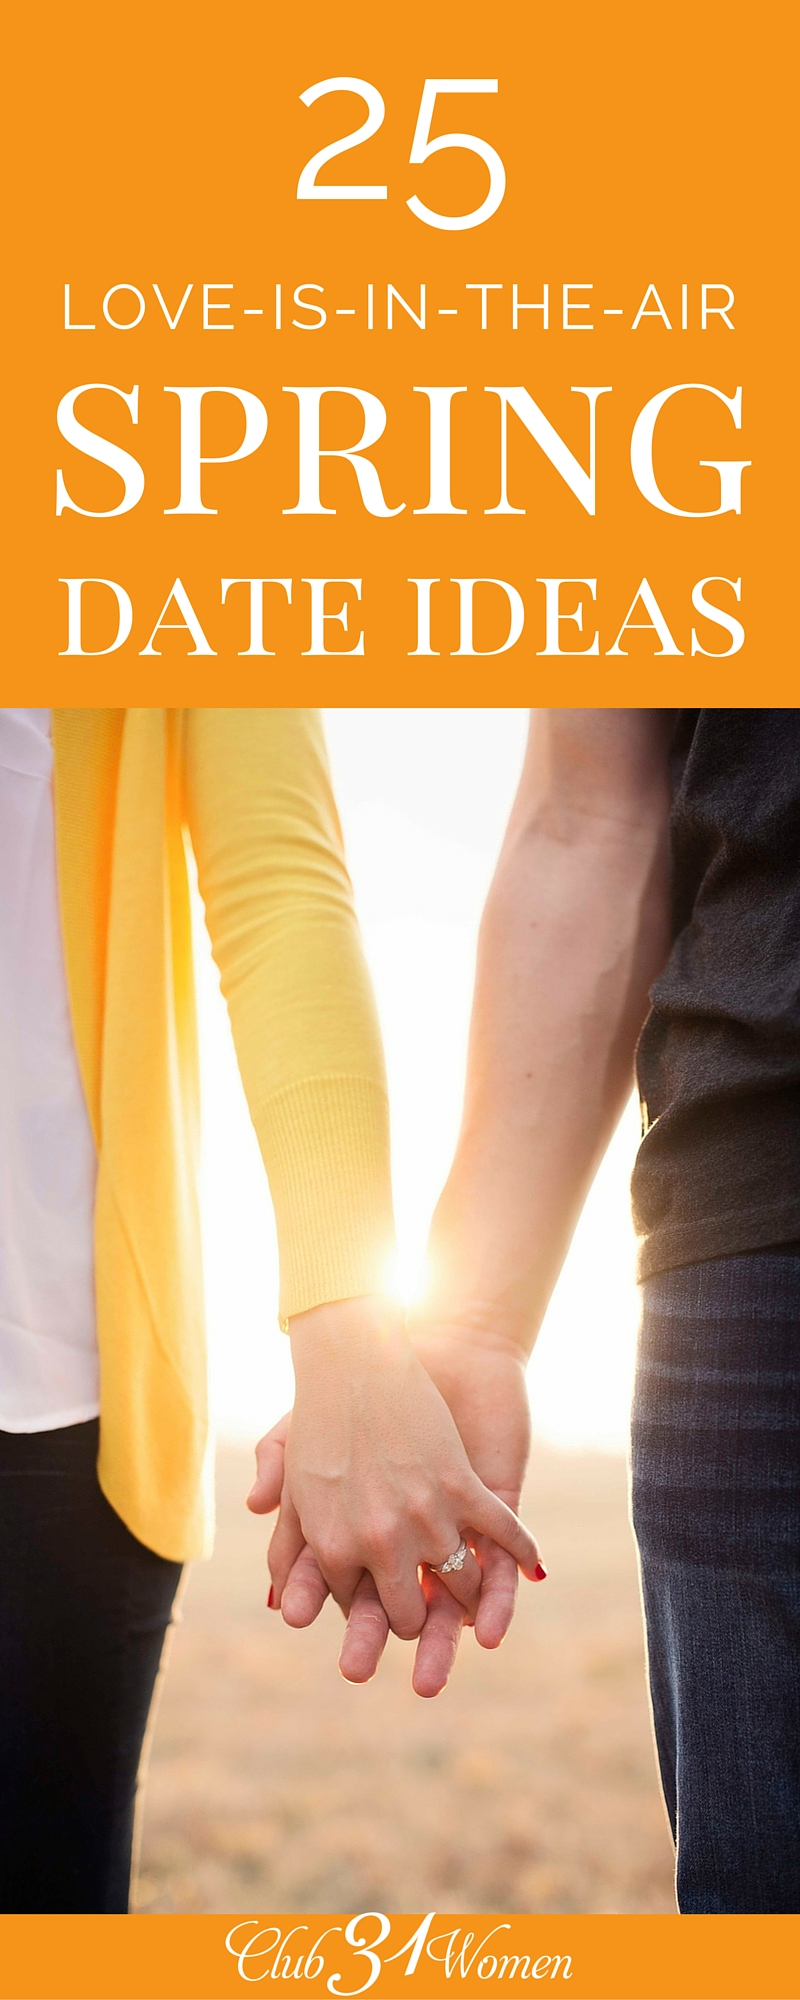 Ready to switch up seasons and do something new? Here are 25 favorite date ideas for married couples to make the most of spring - fun, fresh, and romantic! ~ Club31Women via @Club31Women